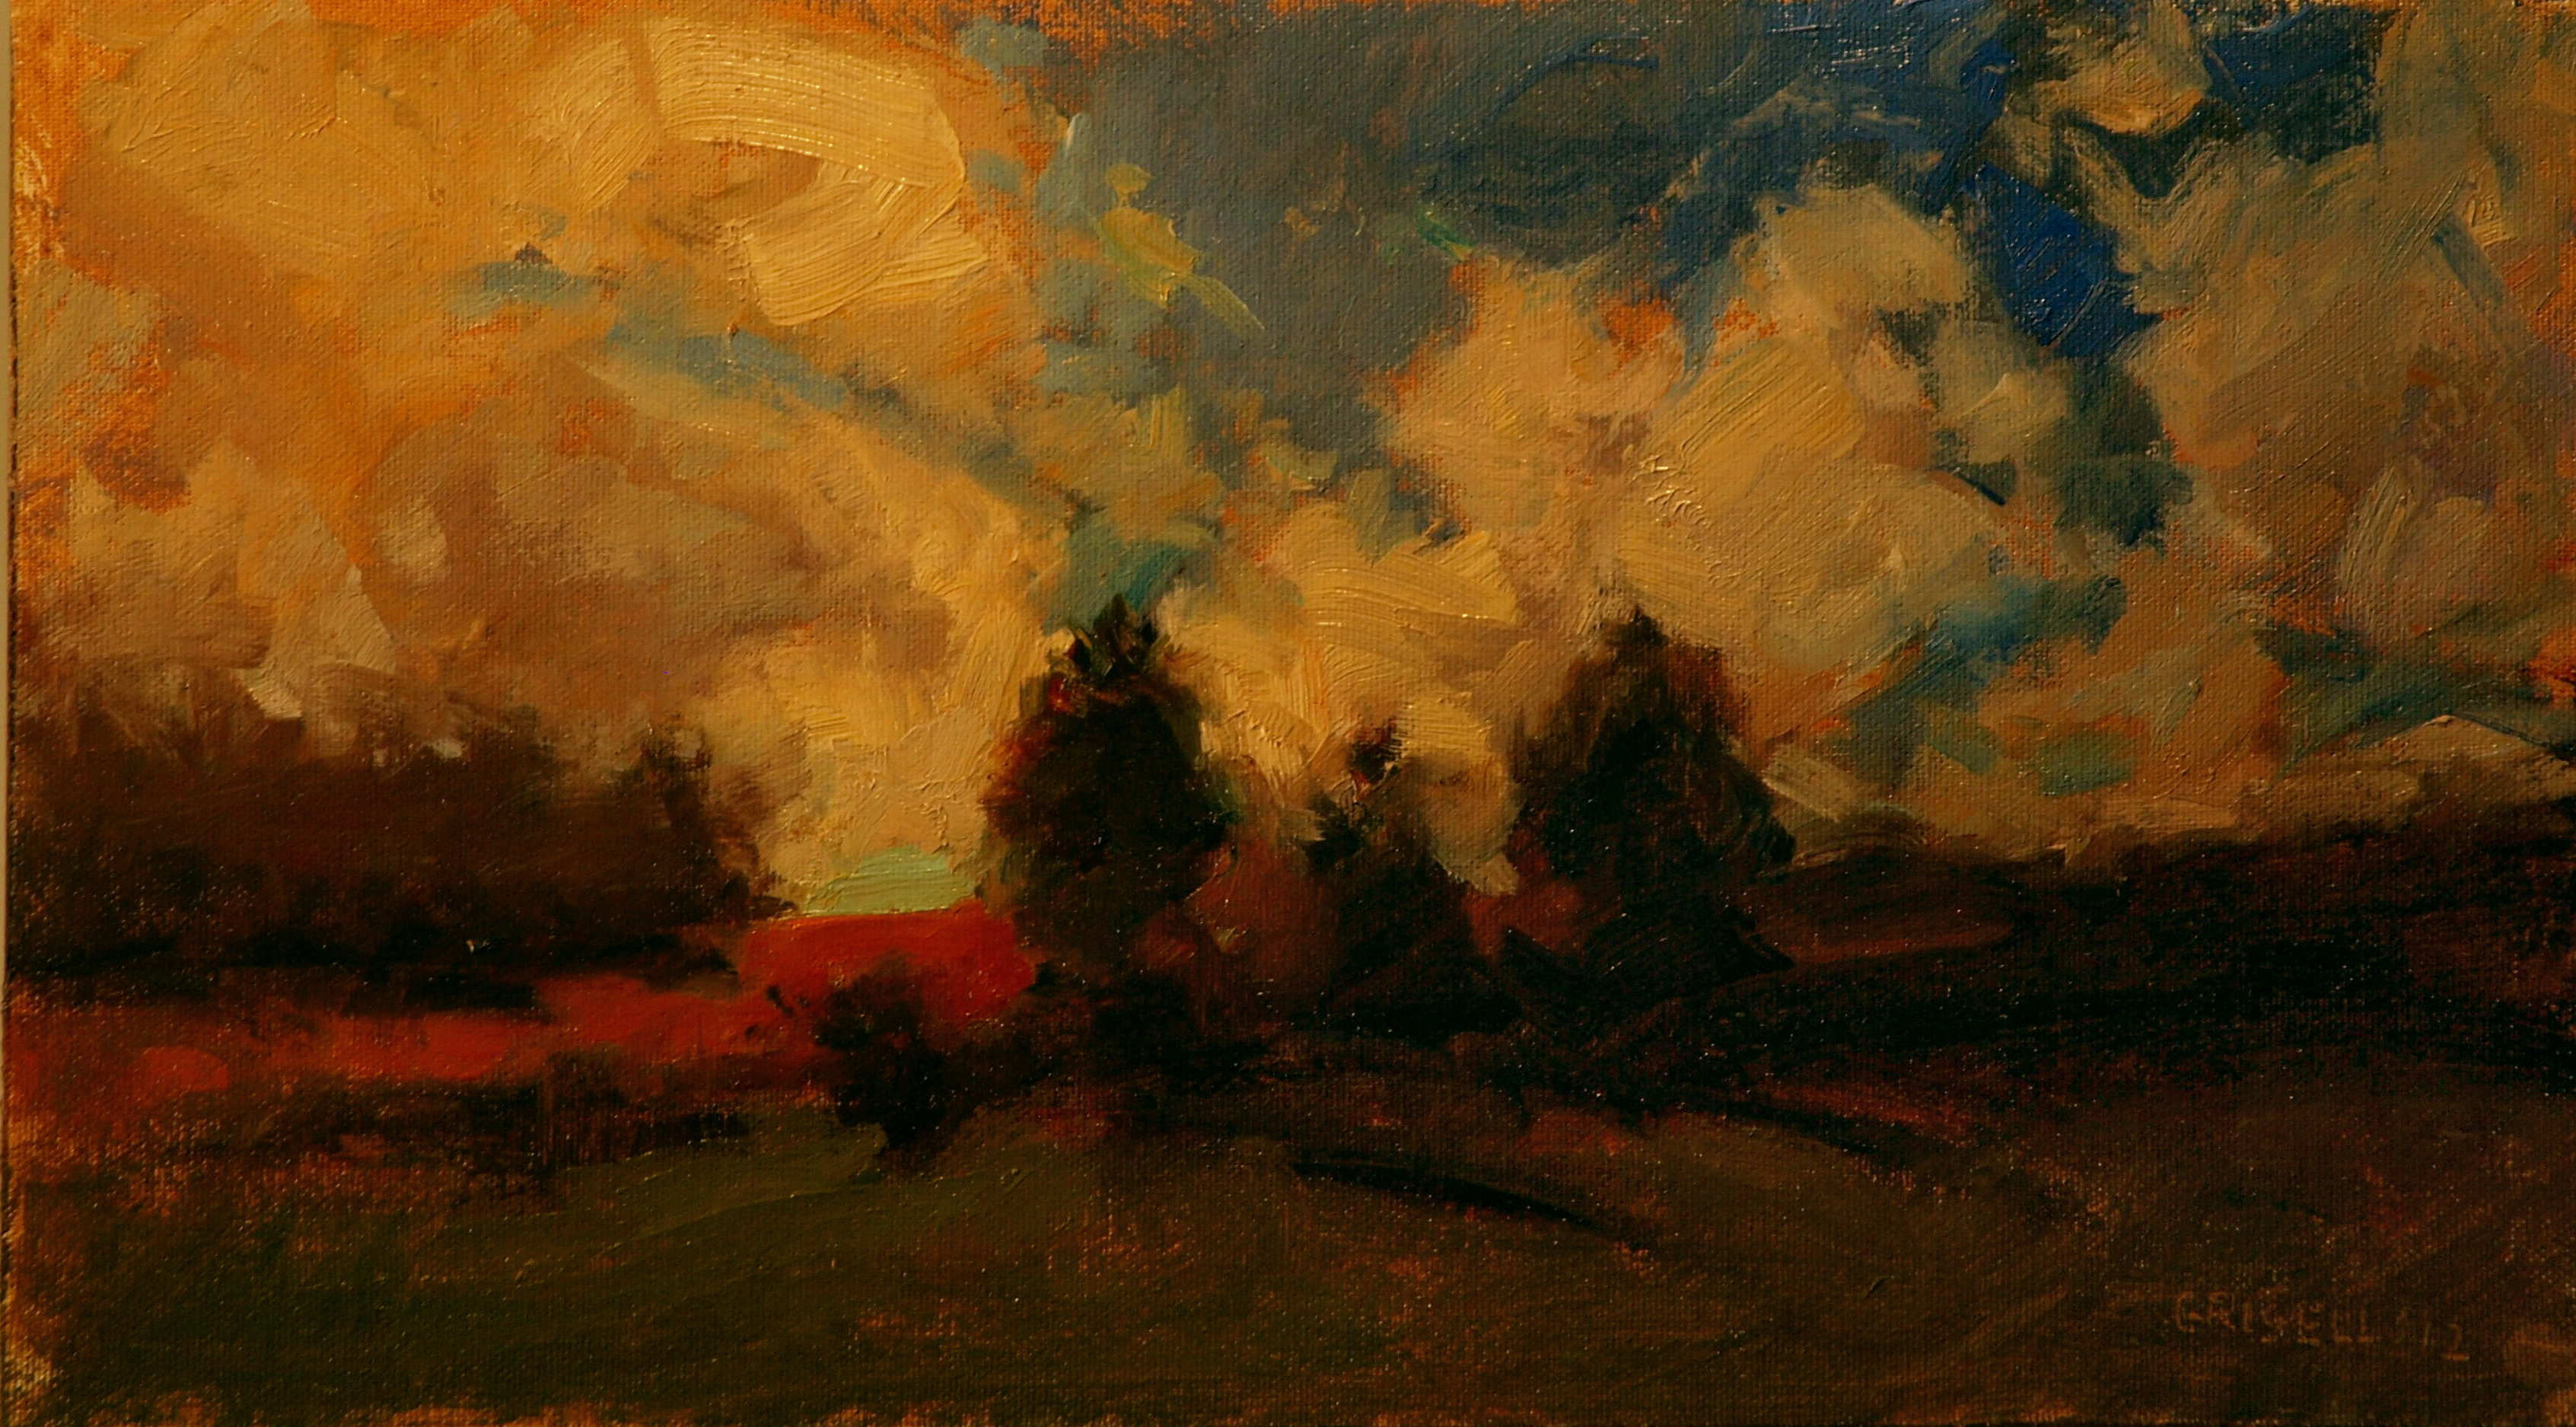 Cedars and Sky, Oil on Canvas on Panel, 9 x 16 Inches, by Susan Grisell, $250